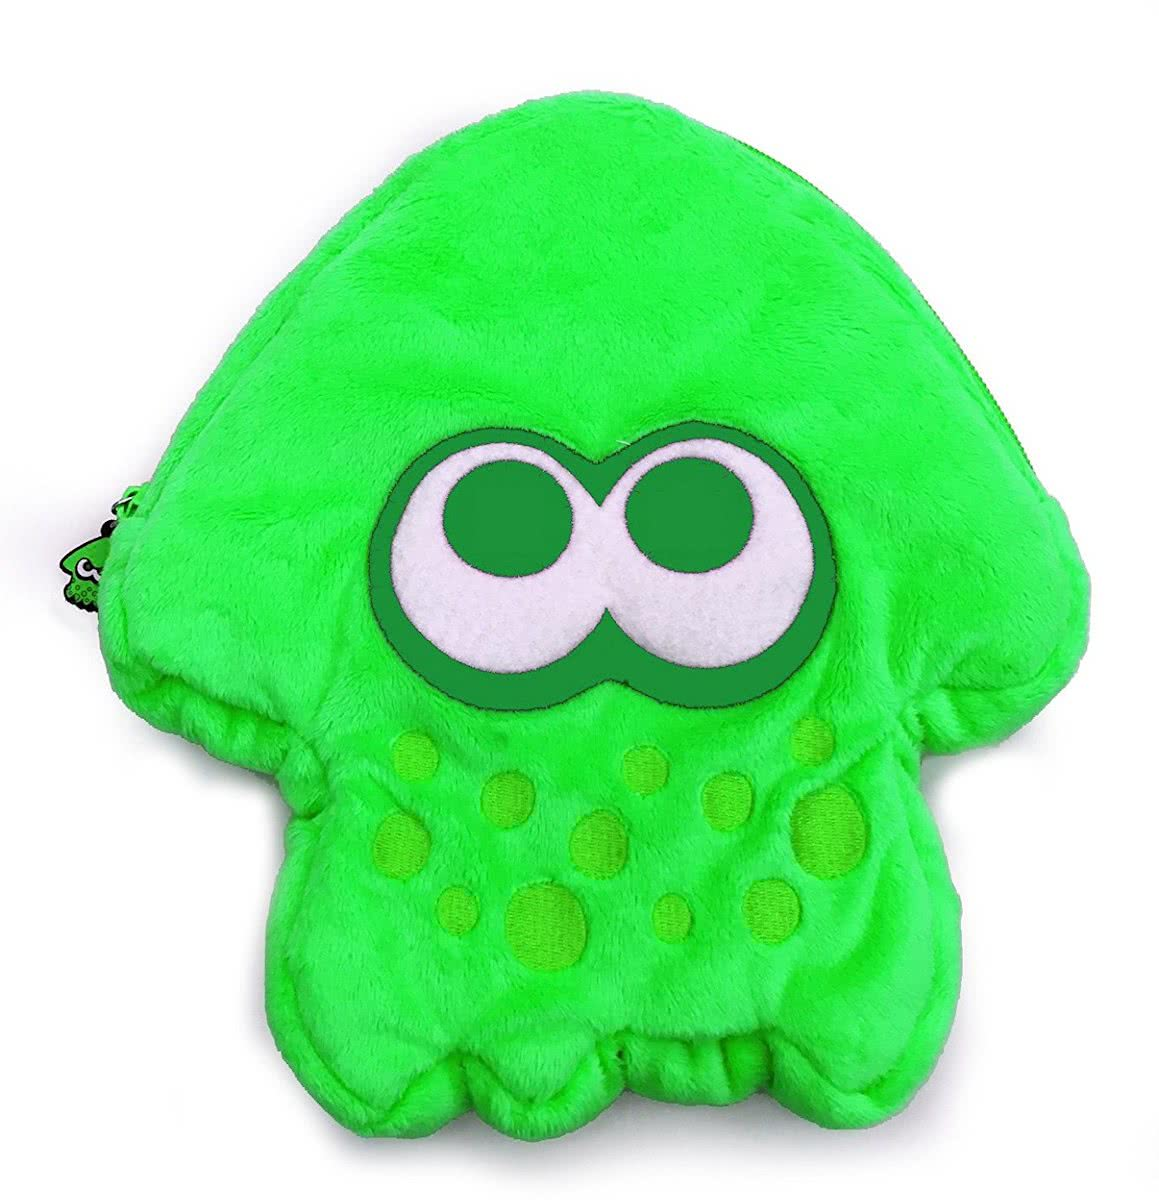 Splatoon 2 Plush Pouch - Nintendo Switch - Groen